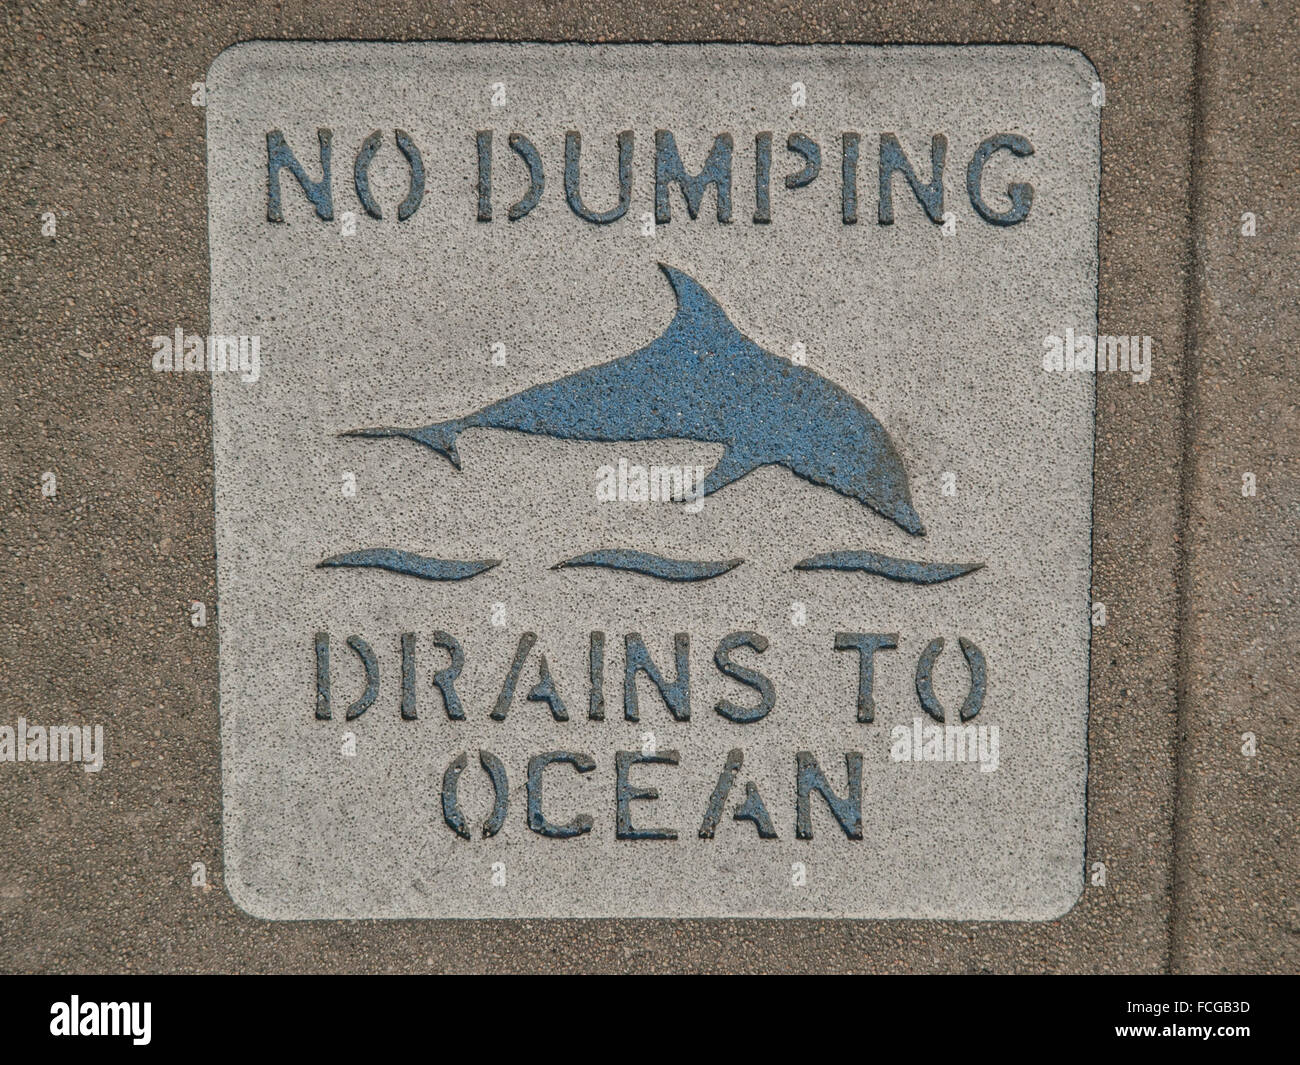 Sign on sidewalk that says No Dumping Drains to Ocean with a picture of a dolphin in Los Angeles California. - Stock Image